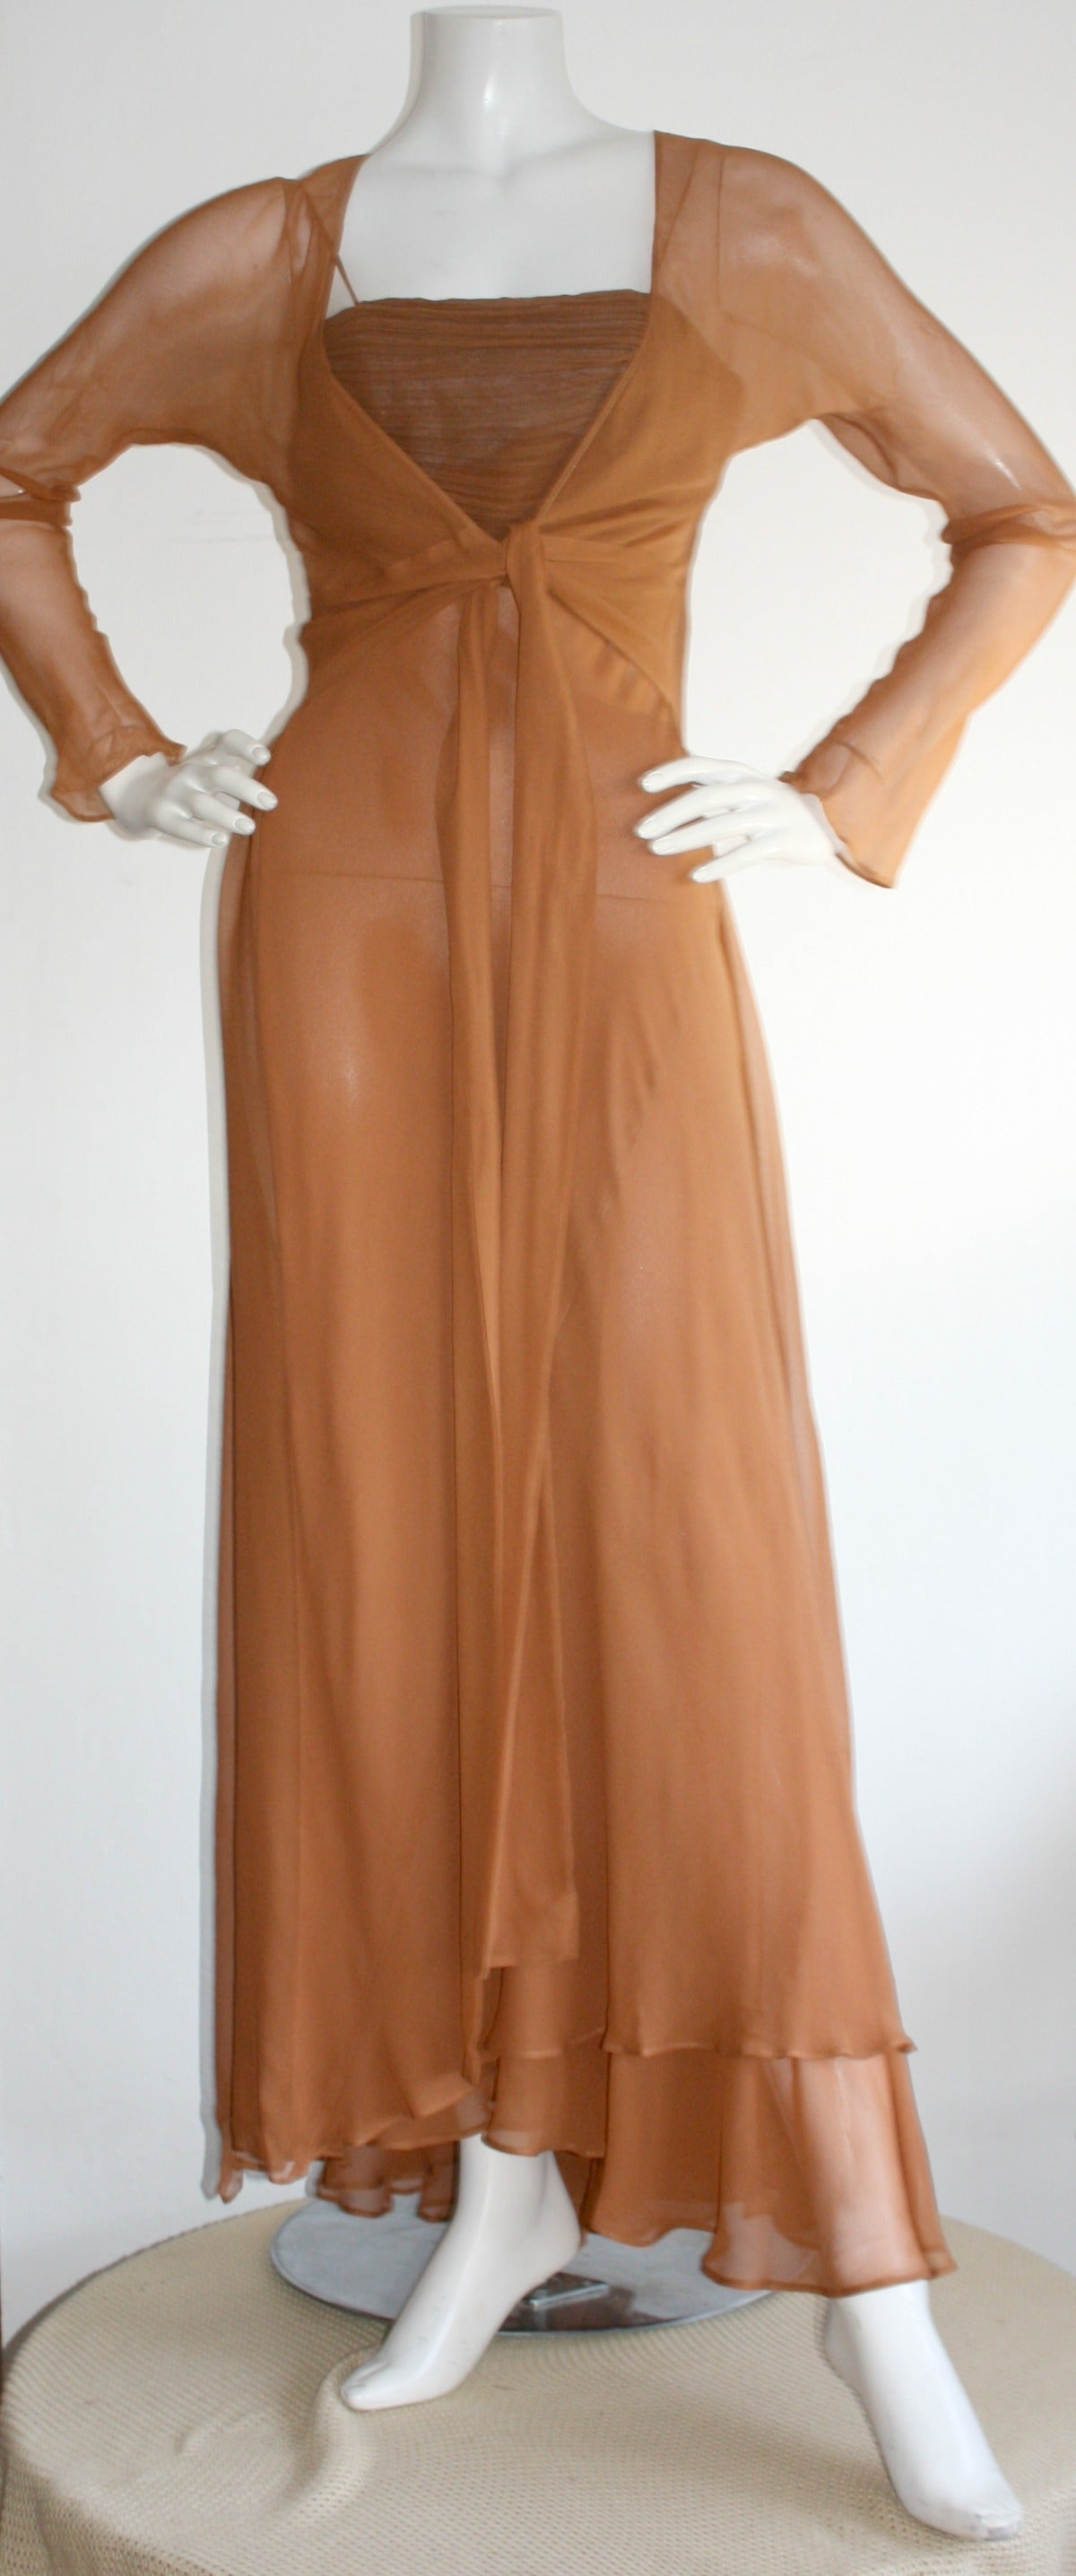 Exquisite Vintage Alberta Ferretti Grecian Goddess Chiffon Gown And Jacket For Sale 4